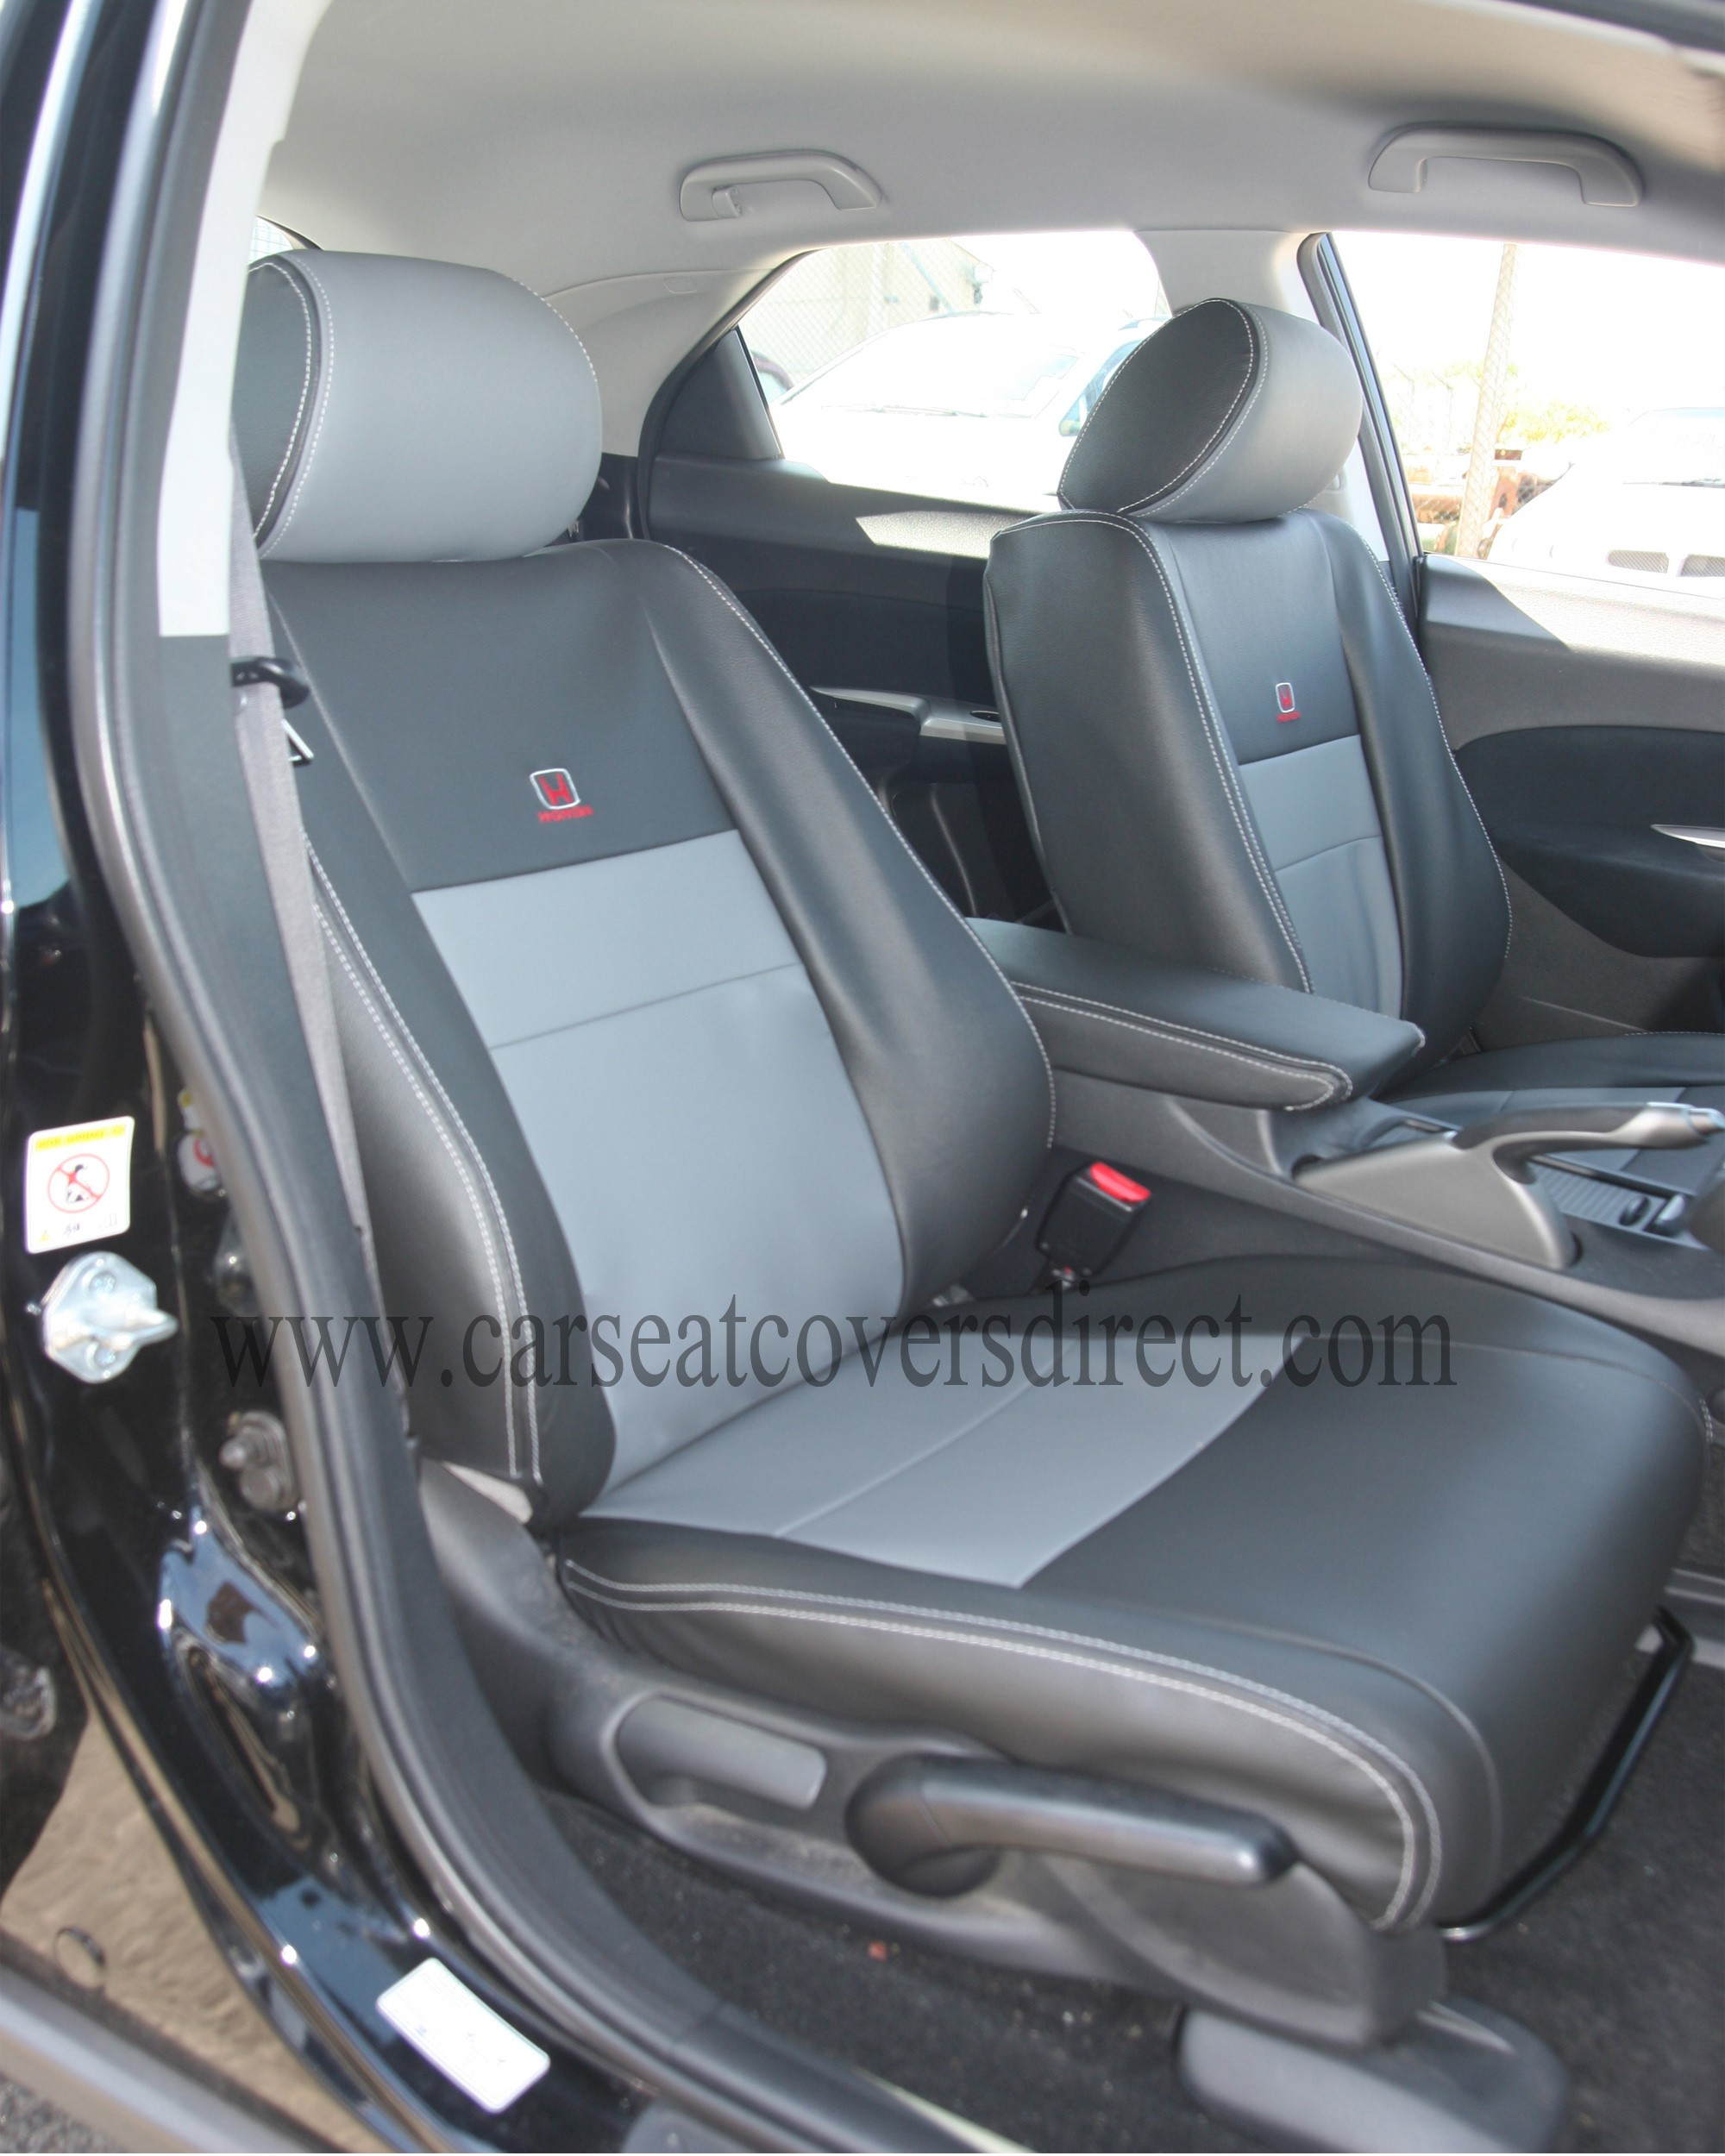 HONDA CIVIC seat covers